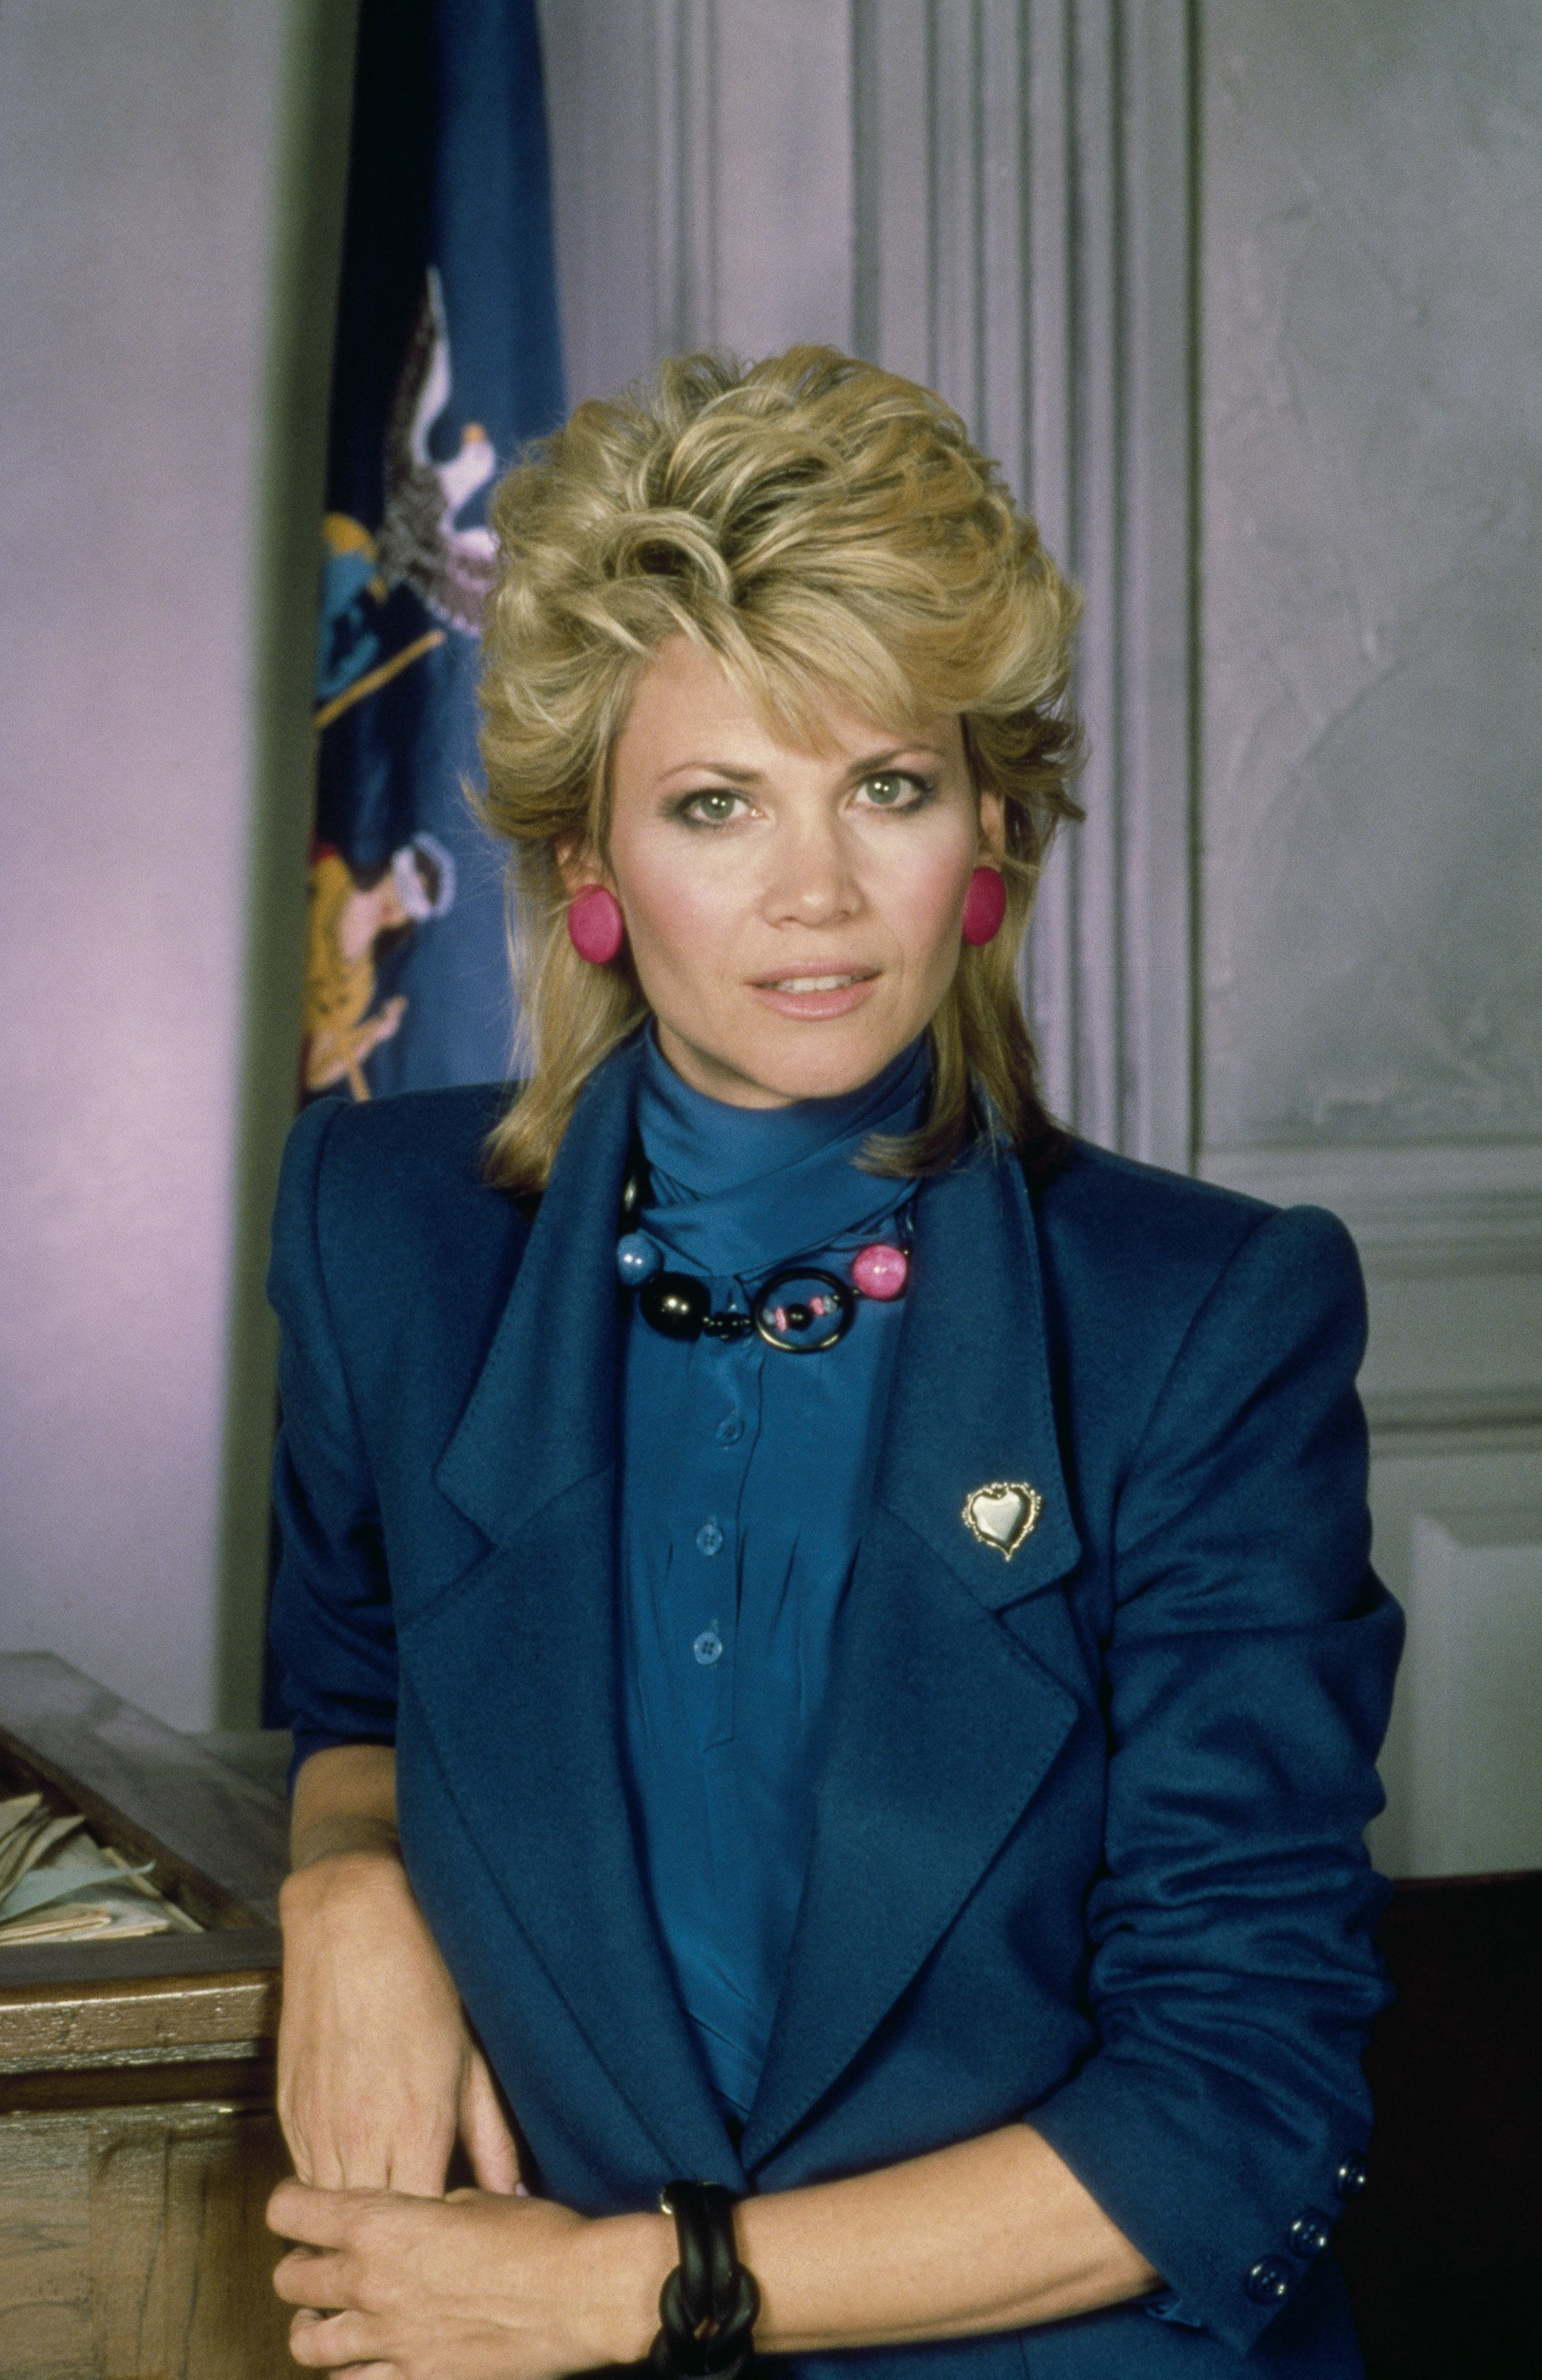 Image Credits: Getty Images | Markie Post was chosen after 6 female leads